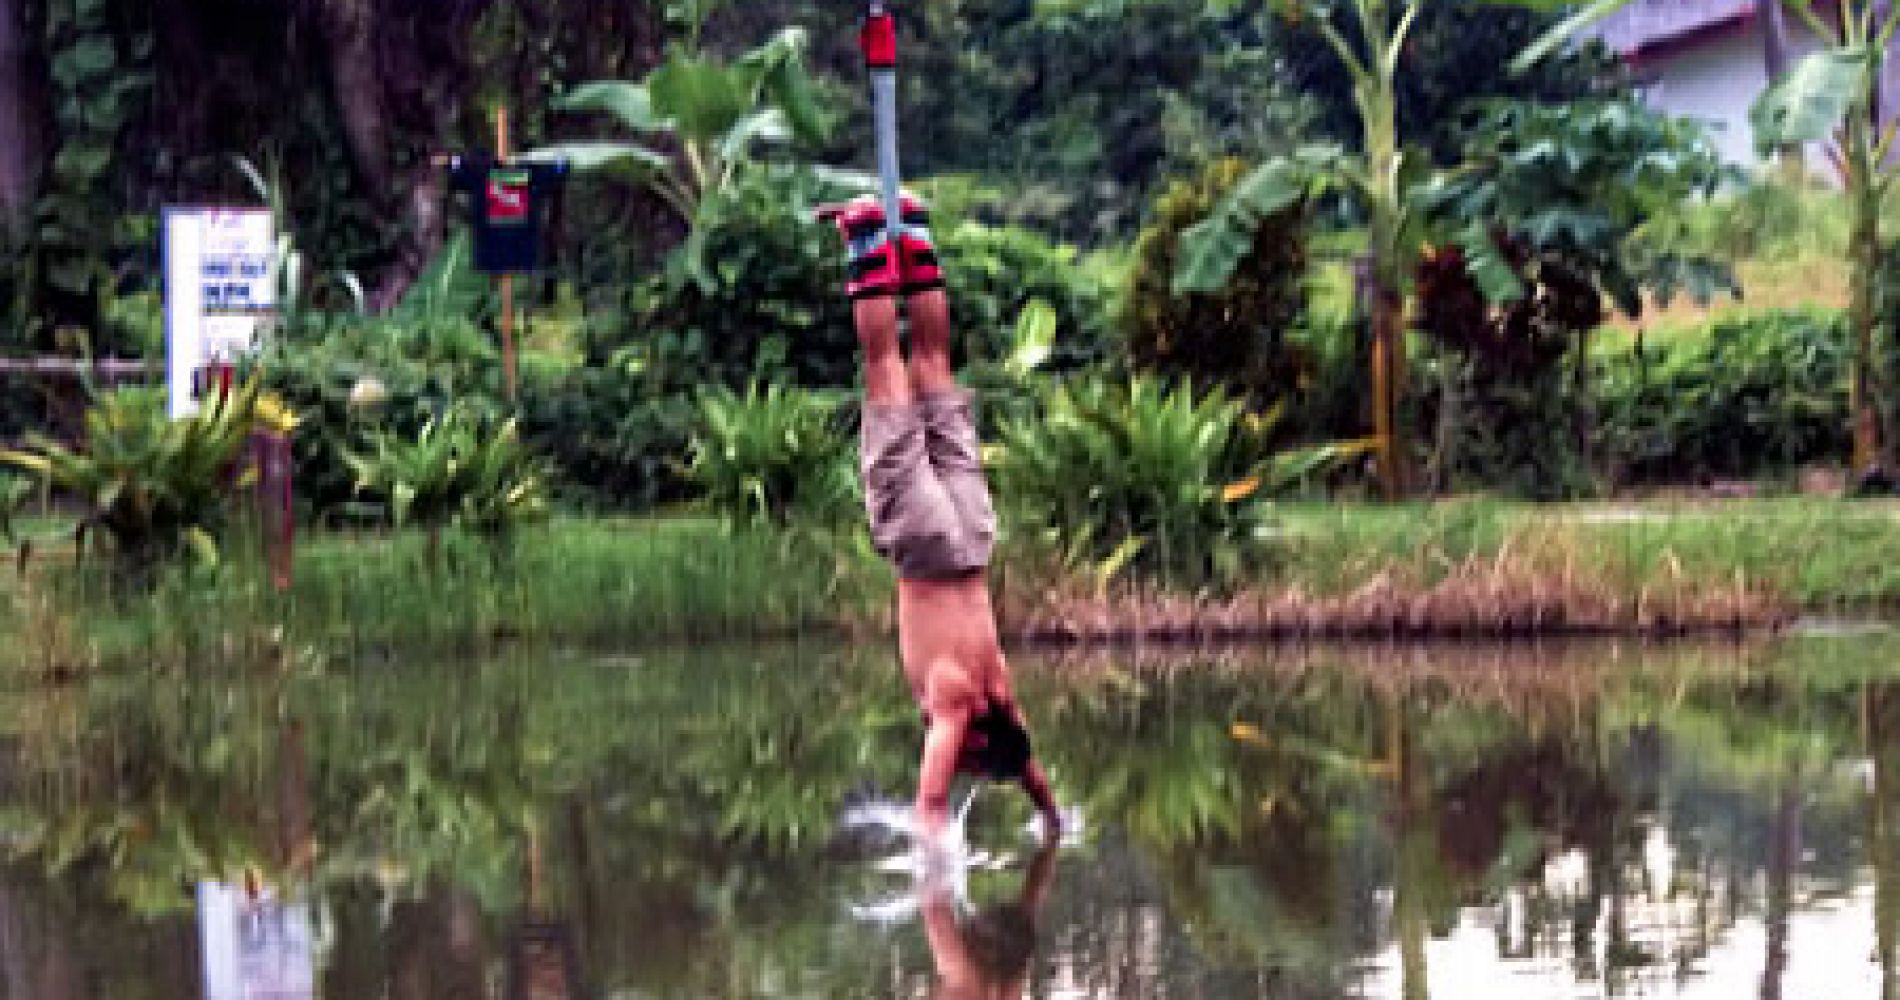 Jungle Bungee Jump for Two in Thailand